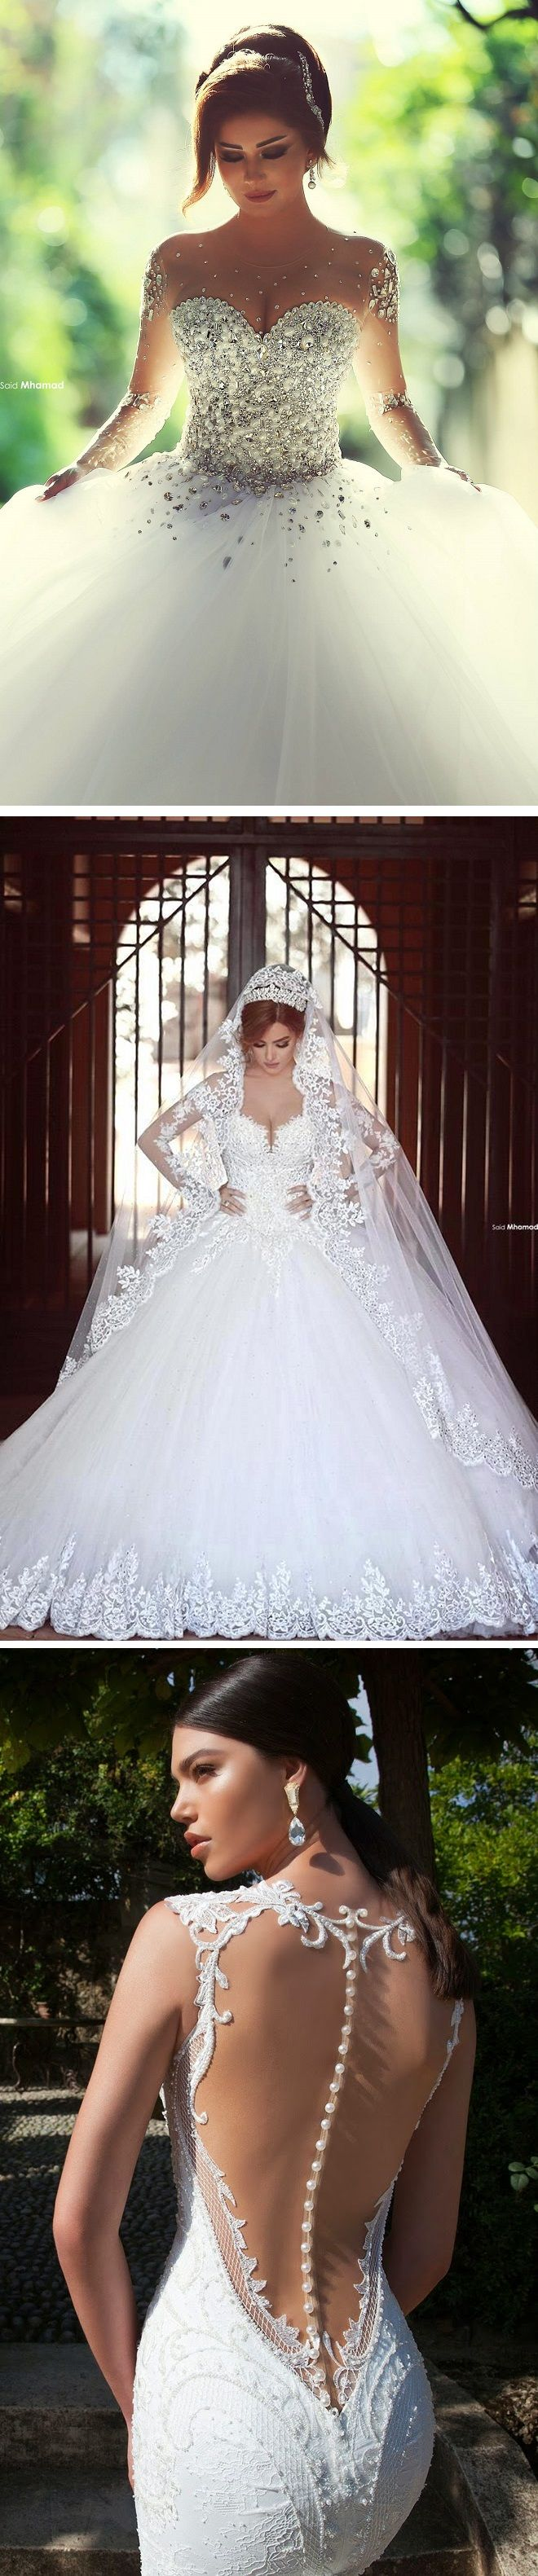 10 Jaw-Droppingly Beautiful Wedding Dresses To vestido novia Obsess Over! #weddings #vestidodenovia | #trajesdenovio | vestidos de novia para gorditas | vestidos de novia cortos http://amzn.to/29aGZWo